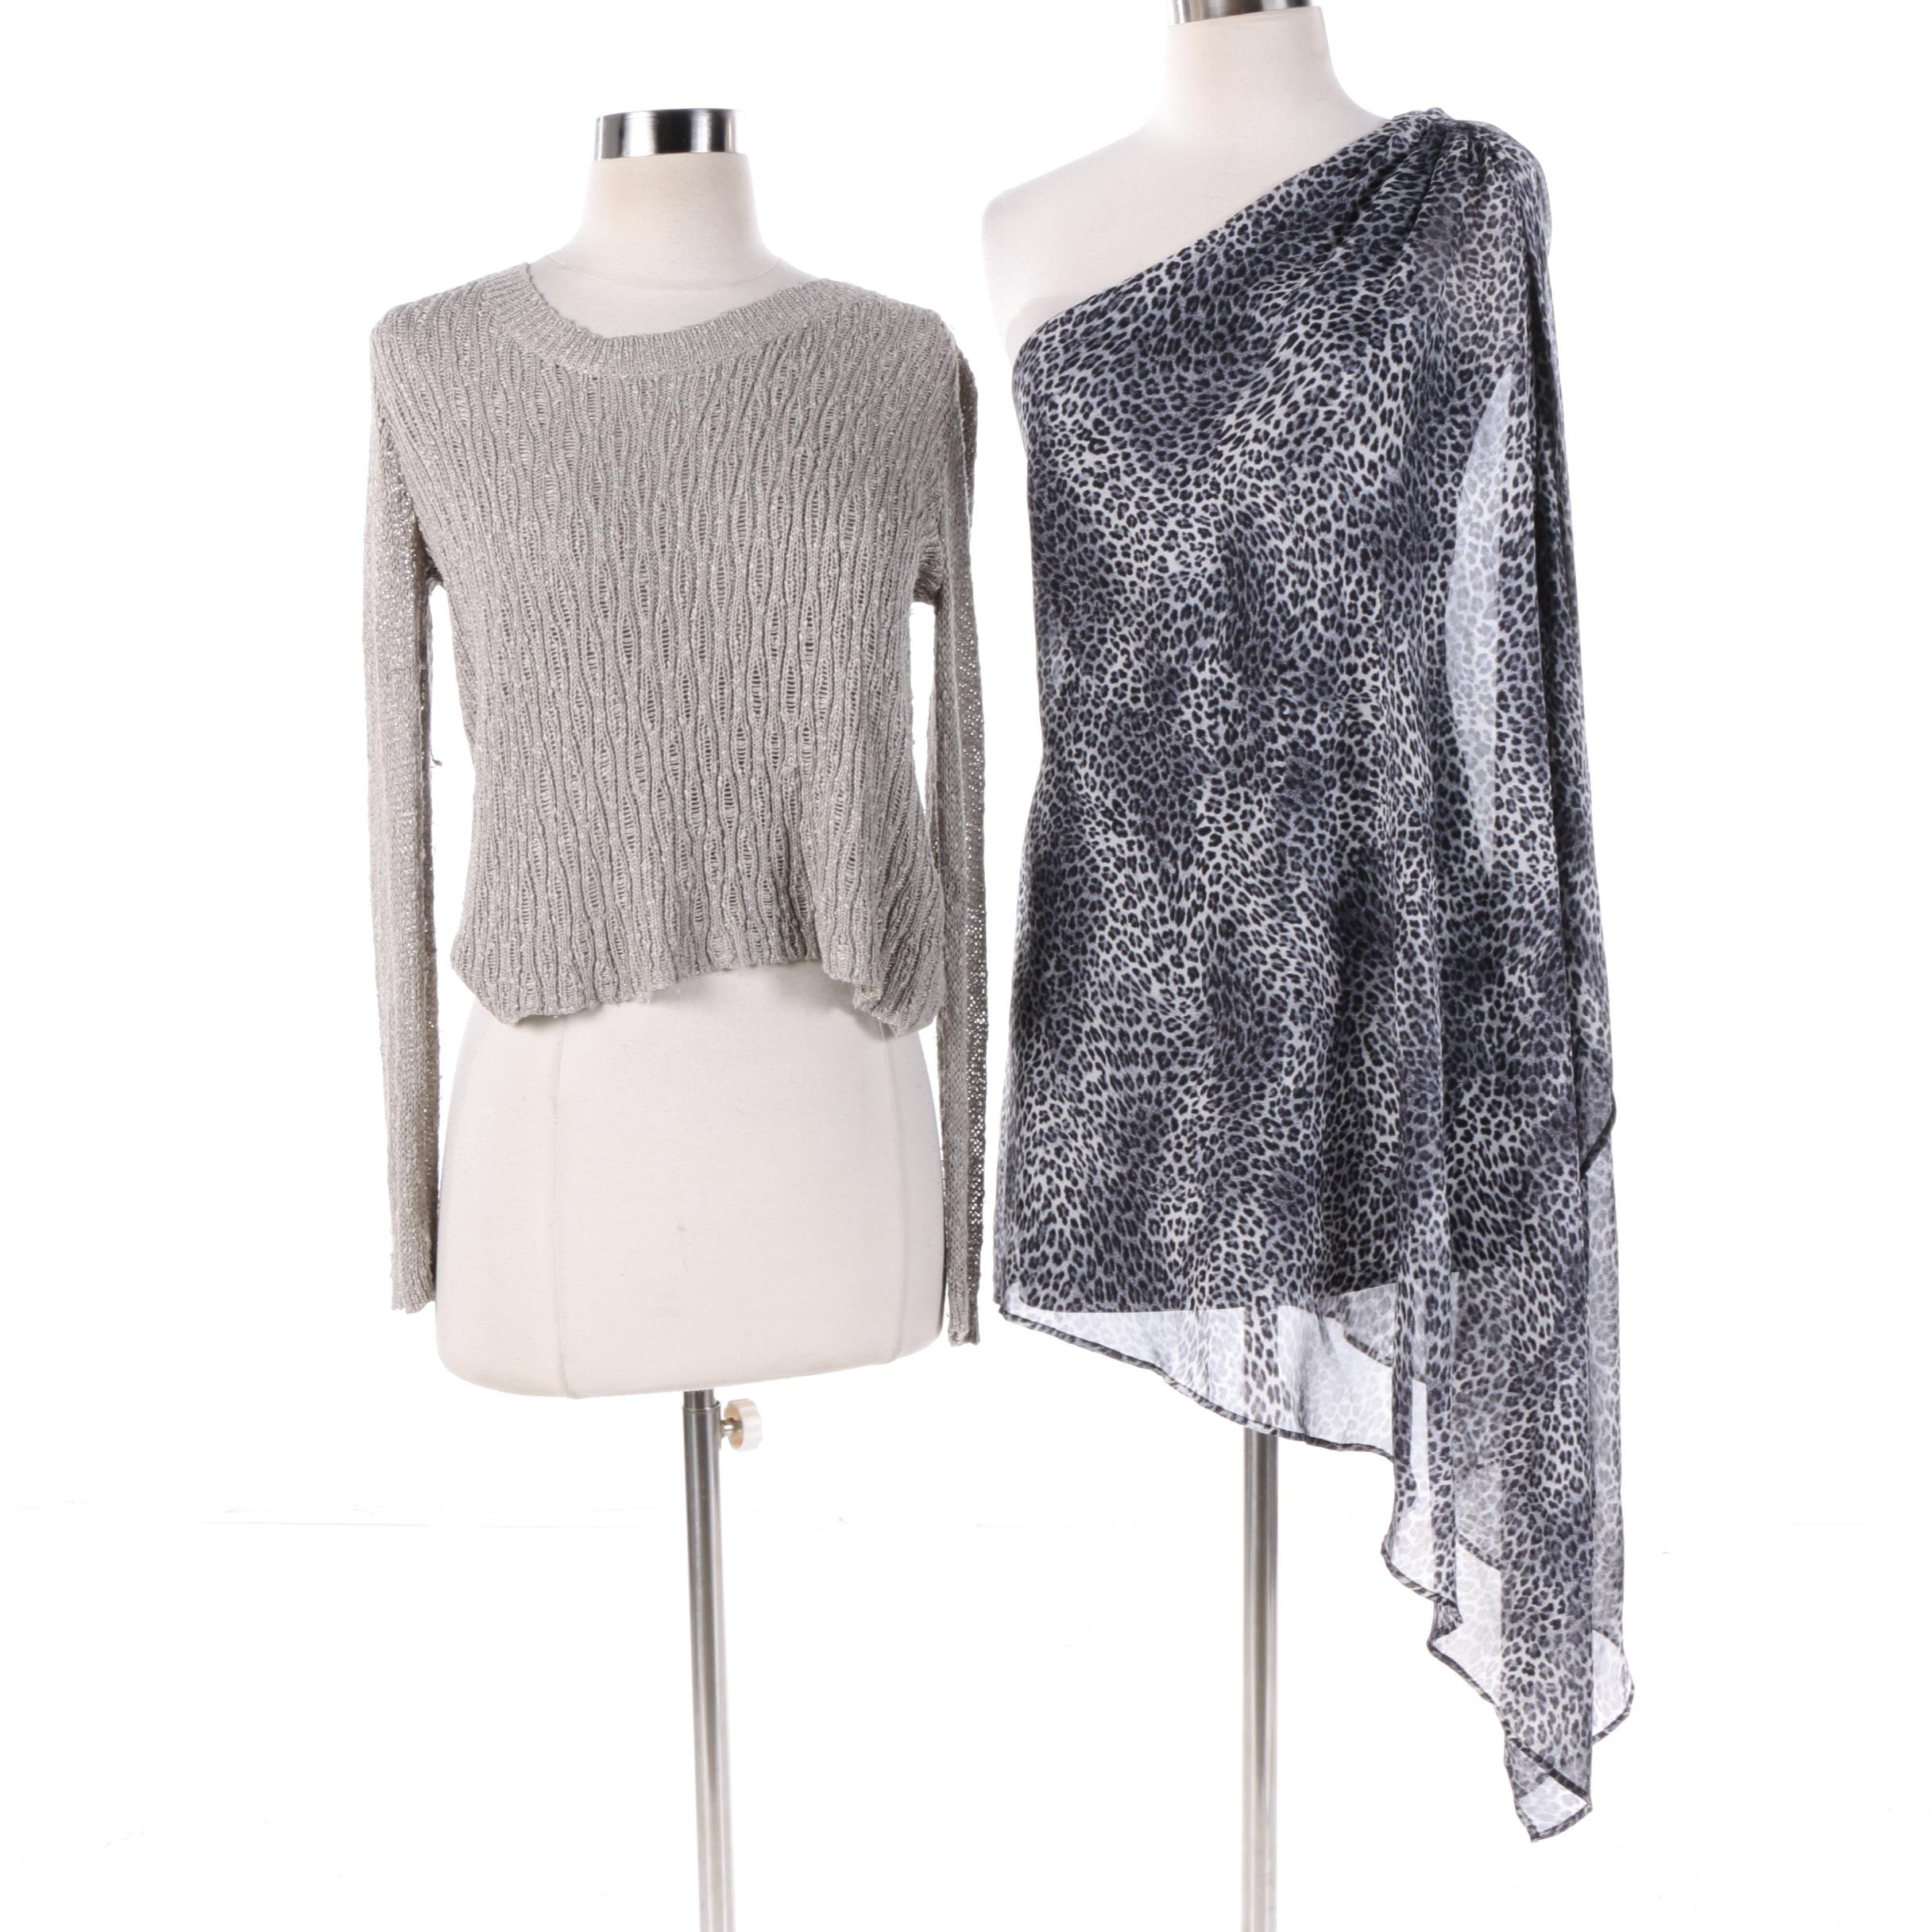 Guess by Marciano One-Shoulder Tunic and Helmut Lang Pullover